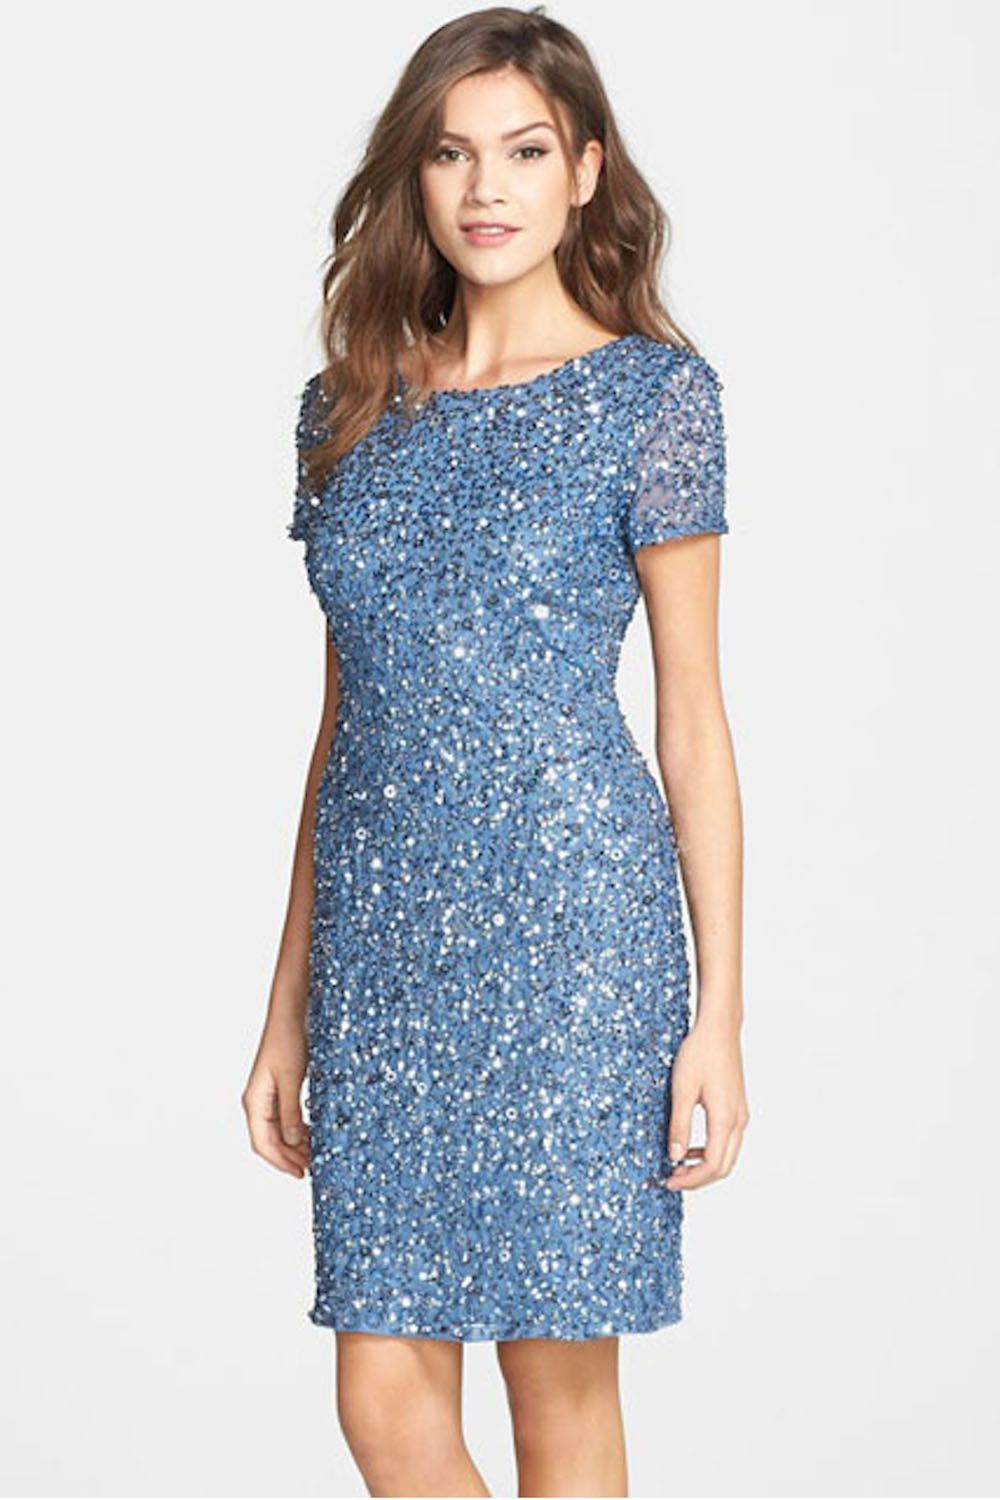 The Prettiest, Sparkliest Prom Dresses to Obsess Over Right Now